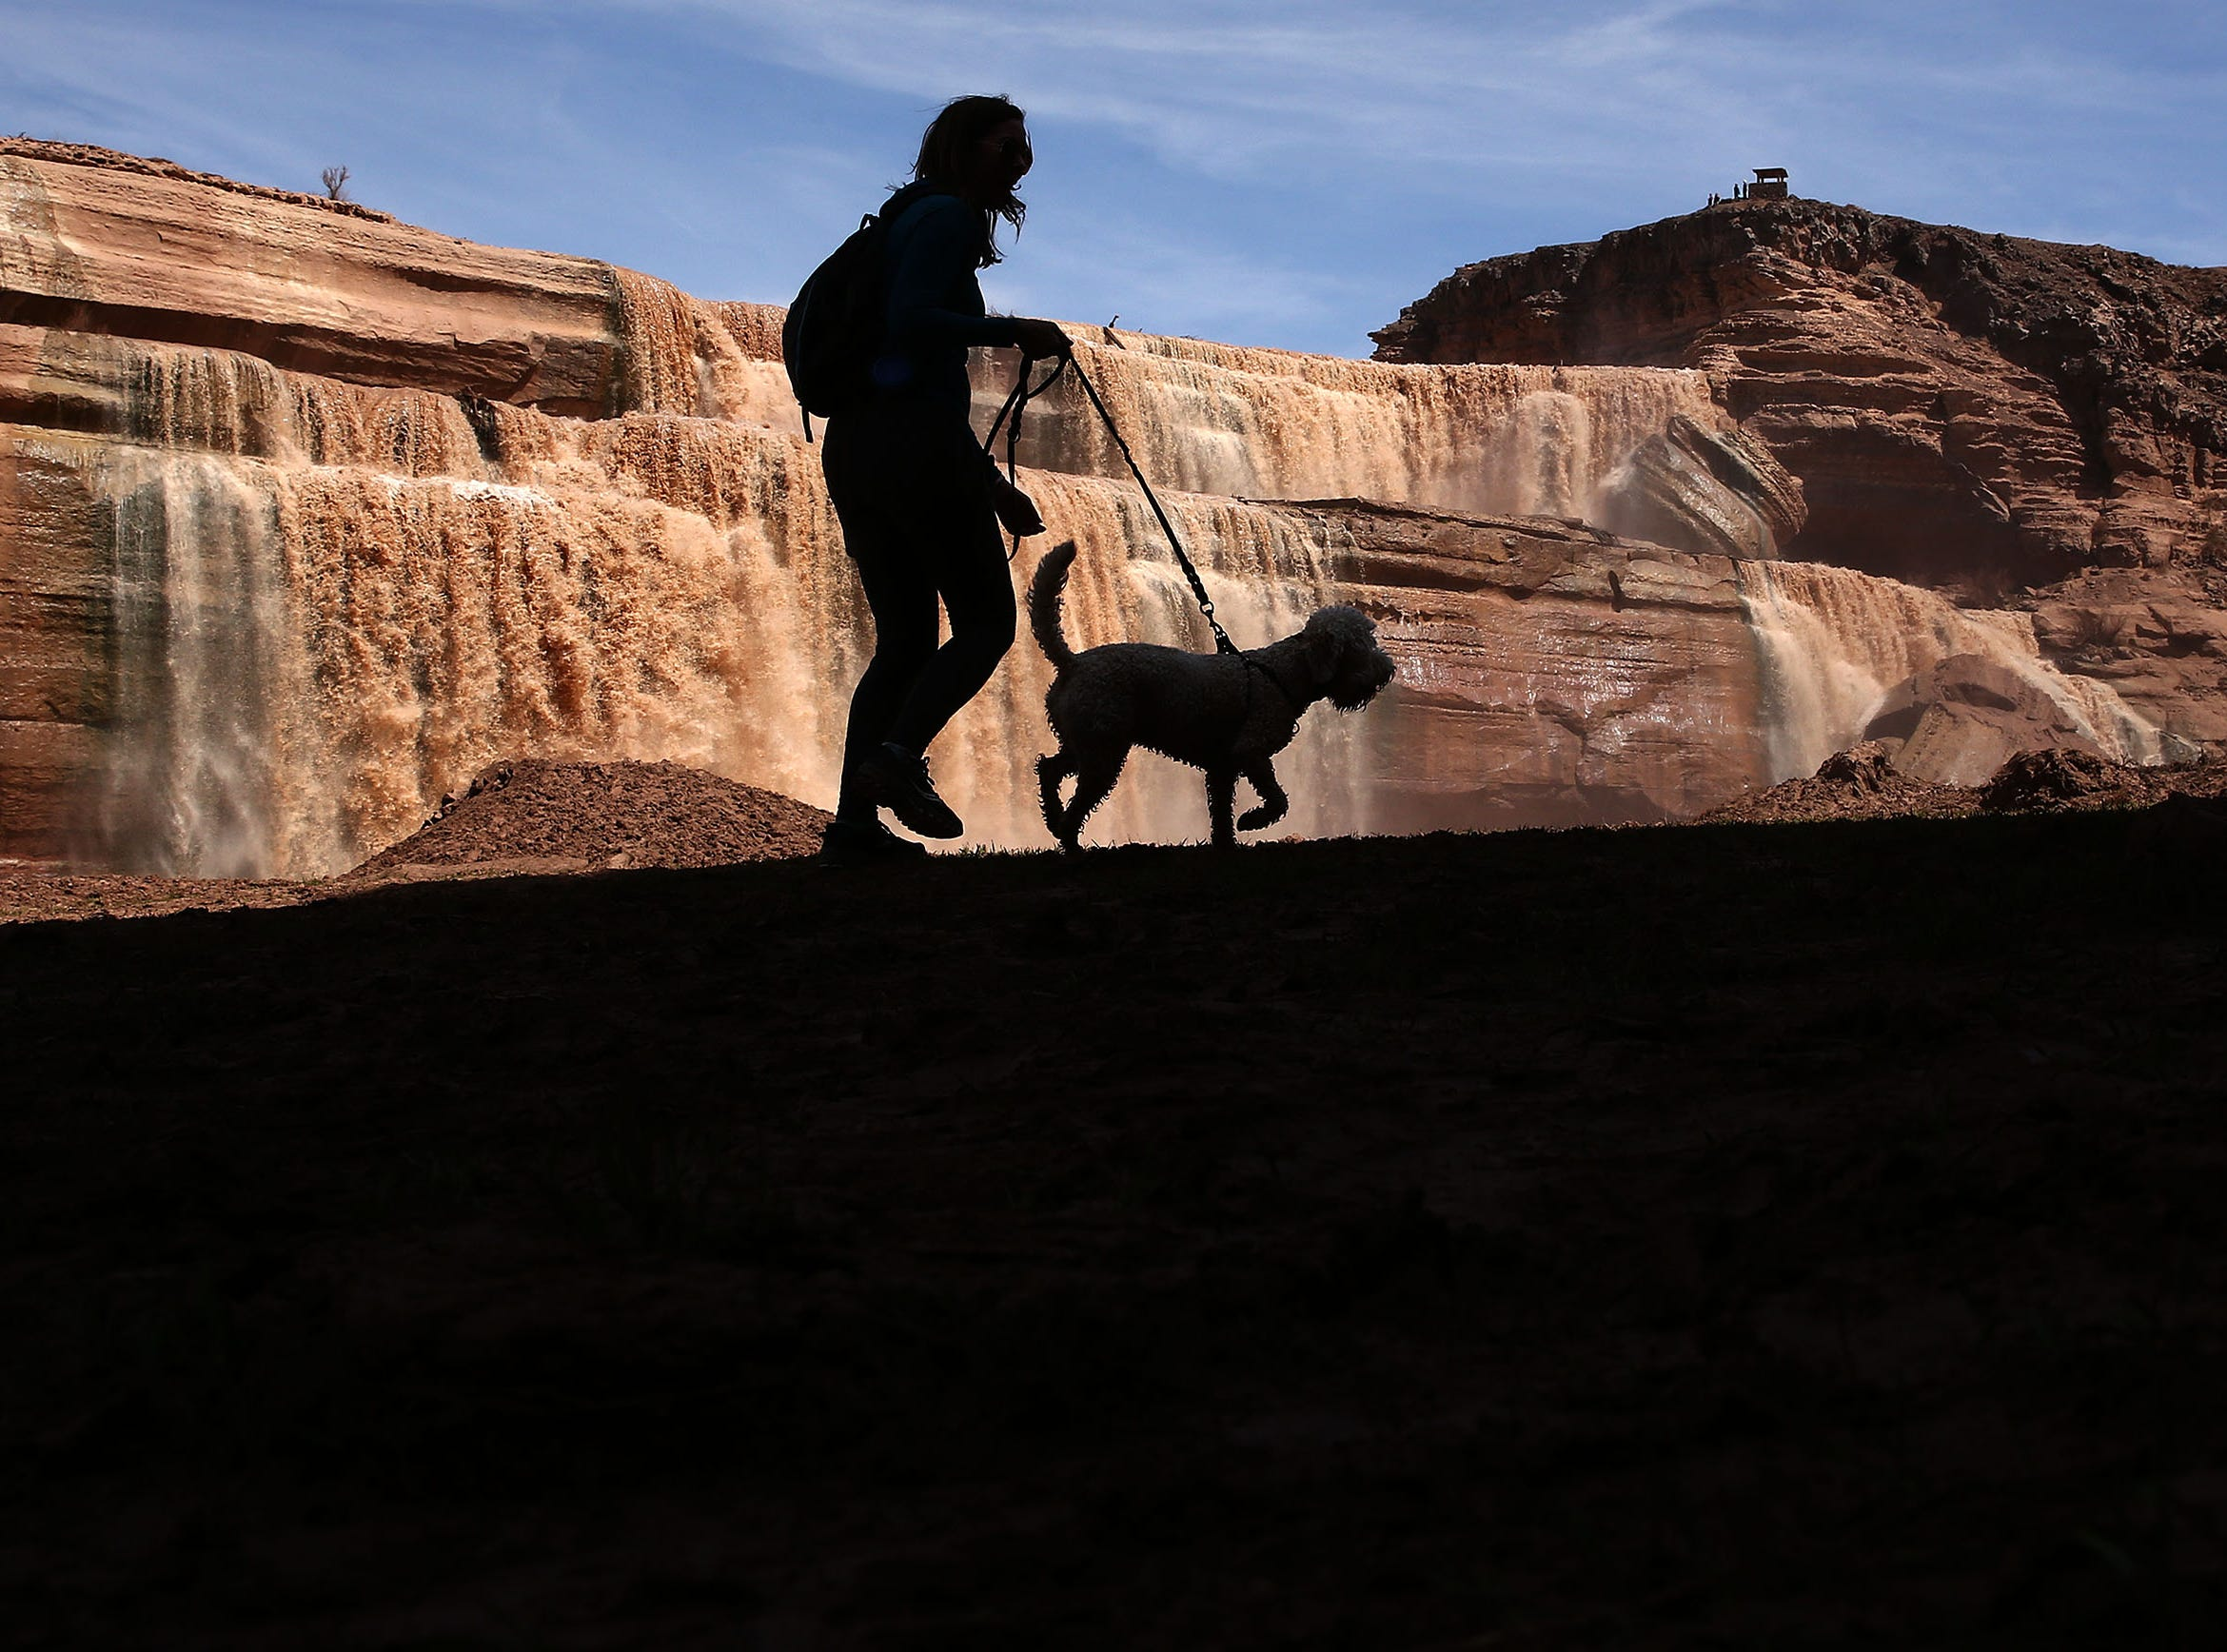 Sunny St. John walks Indiana at Grand Falls in the Painted Desert on the Navajo Nation on March 28, 2019, near Leupp. Melted snow and rain travels down the Little Colorado River to the 185-foot fall a.k.a. Chocolate Falls. Grand Falls is 18 feet taller than Niagara Falls.